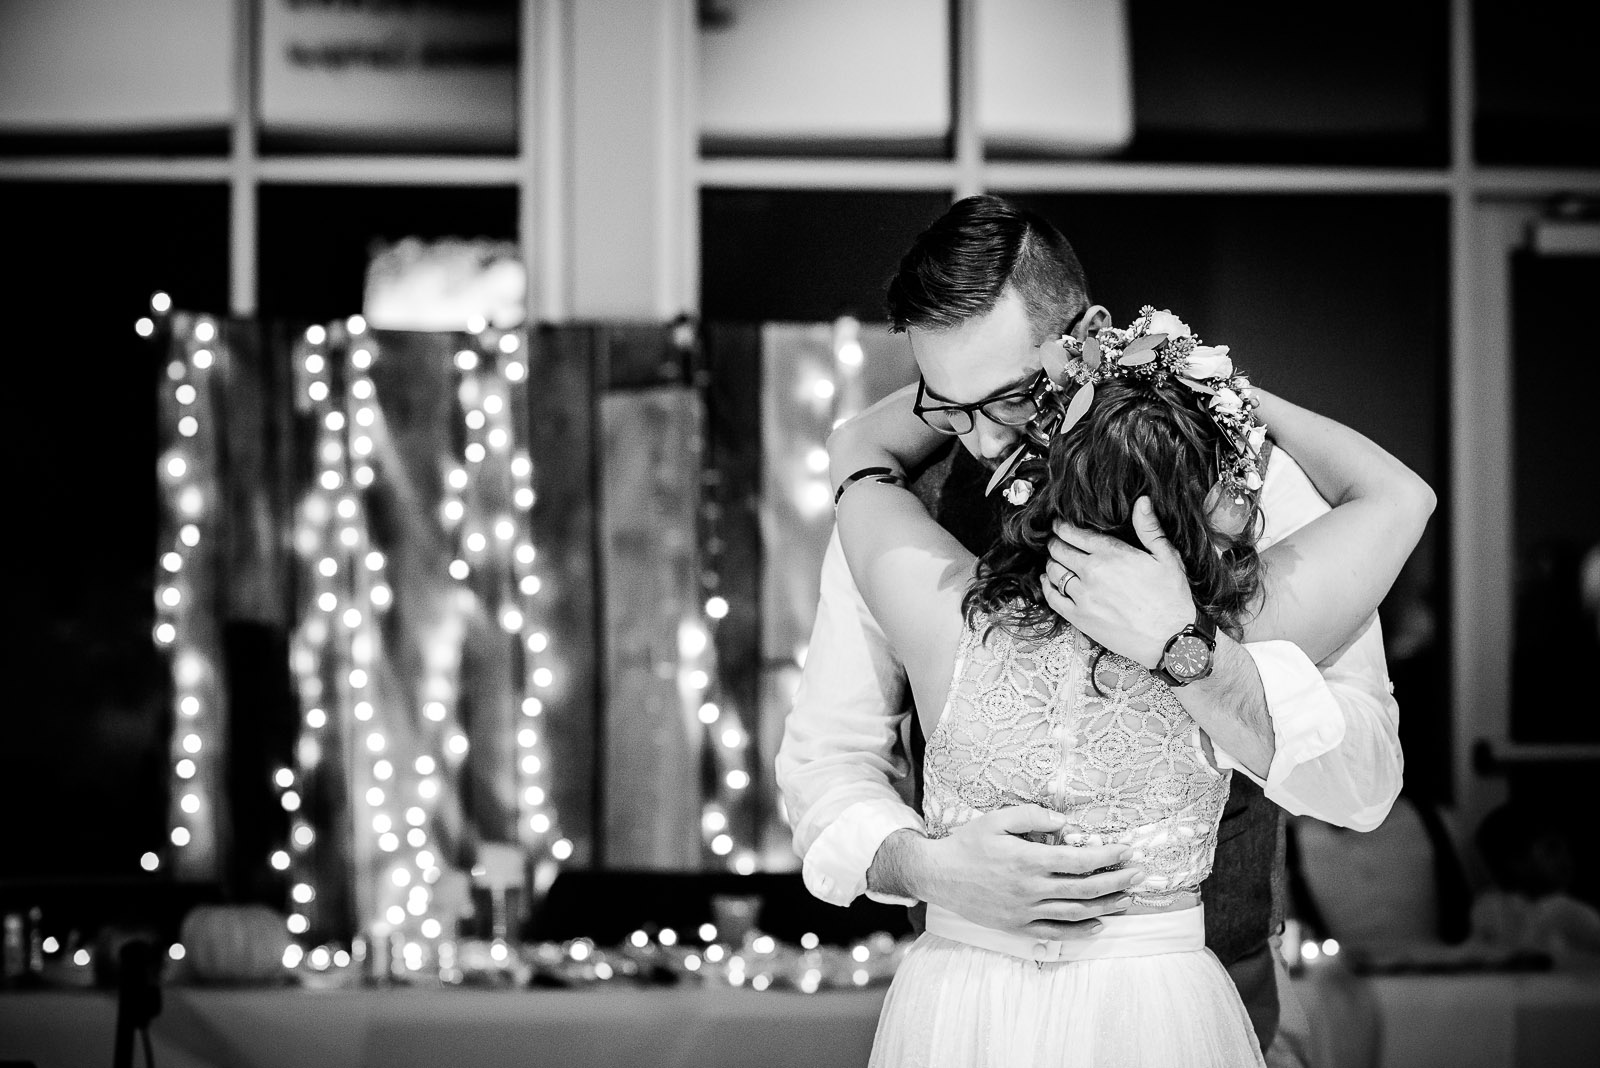 Eric_and_Christy_Photography_Blog_Wedding_Lauren_Jon-65